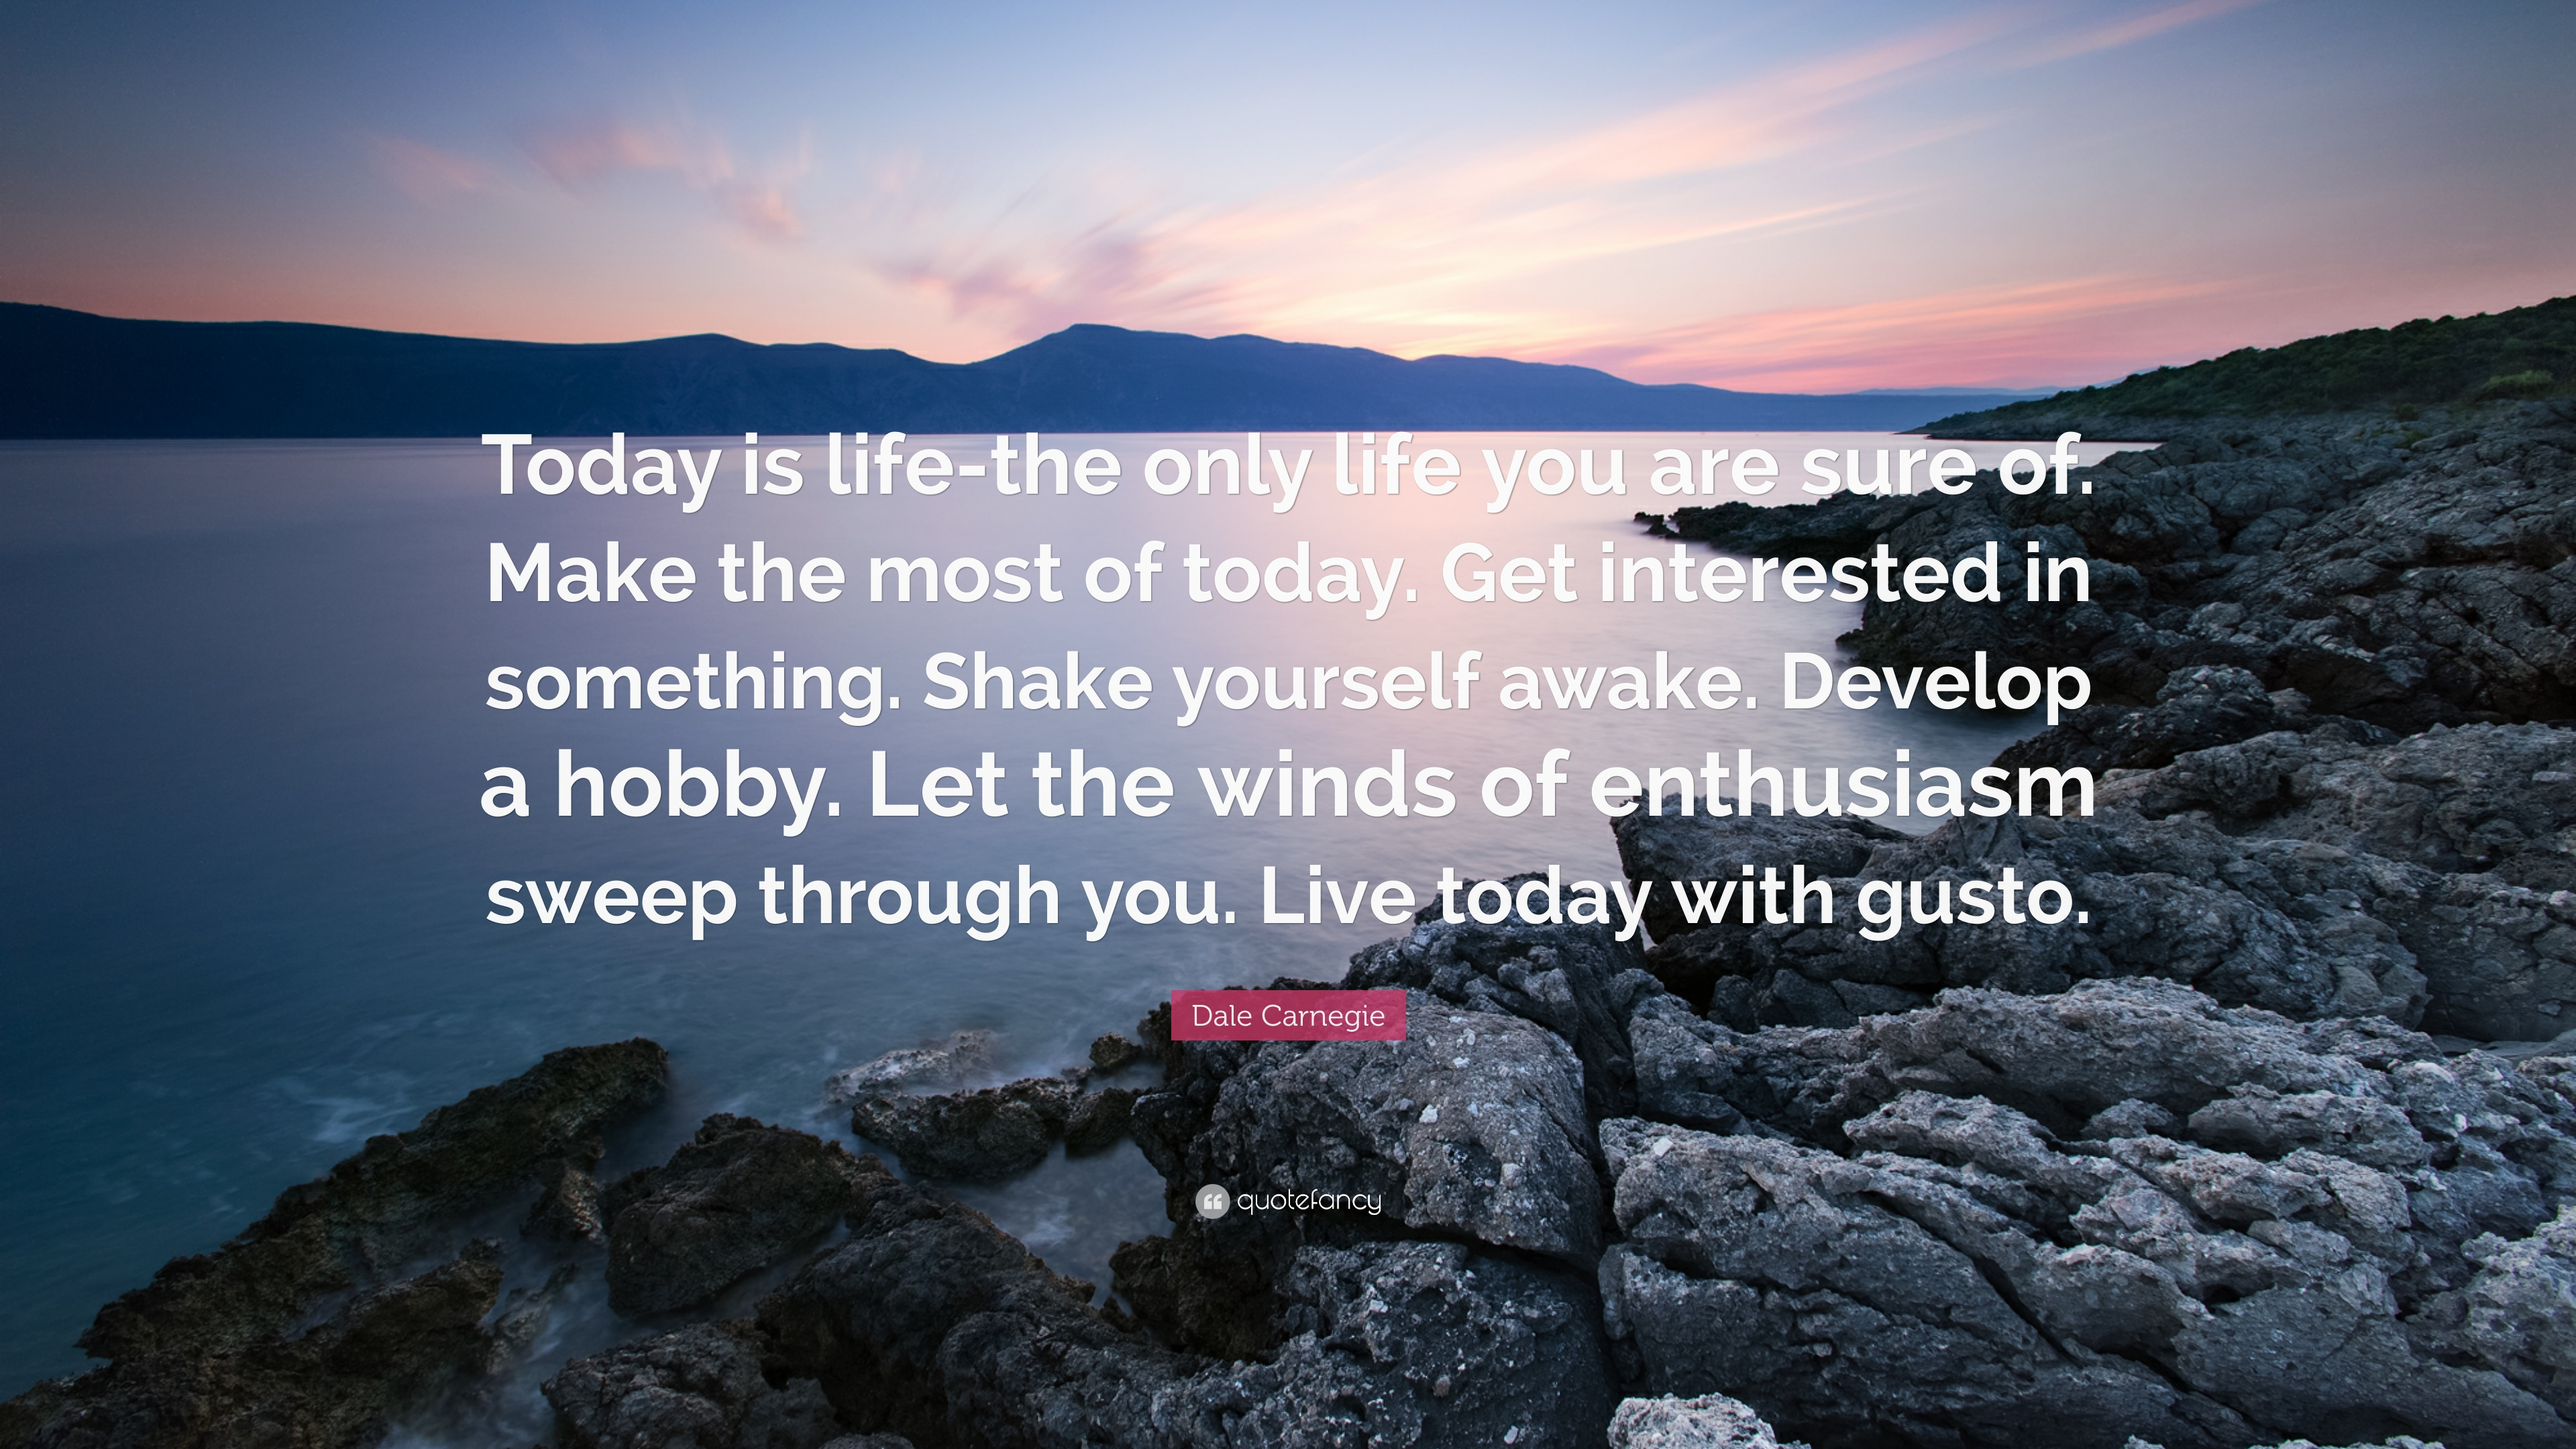 Today is life--the only life you are sure of. Make the most of today. Get interested in something. Shake yourself awake. Develop a hobby. Let the winds of enthusiasm sweep through you. Live today with gusto.